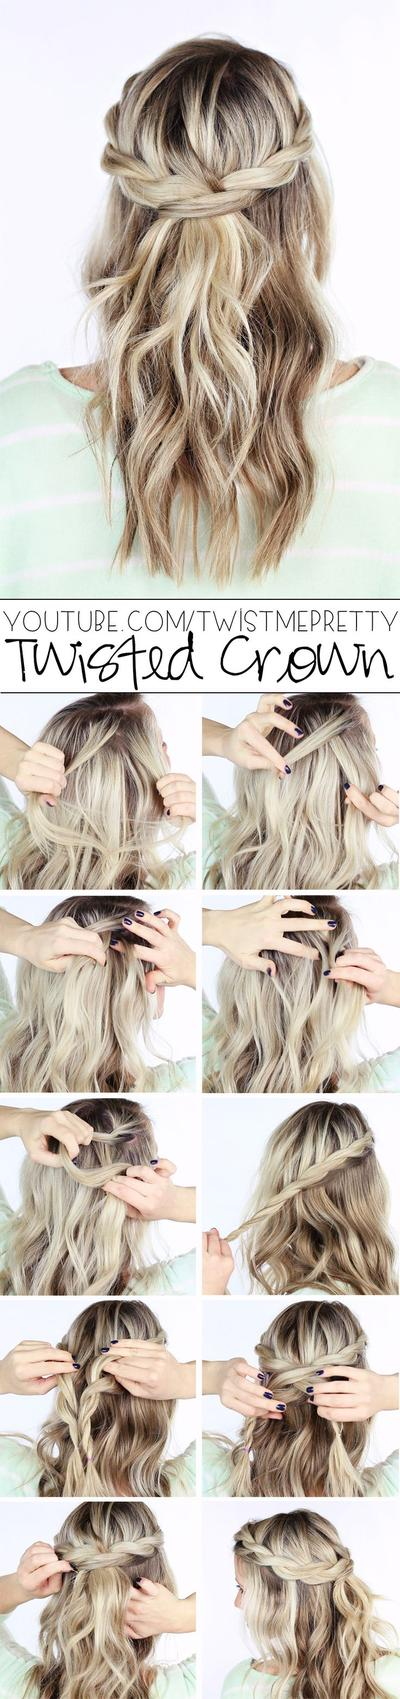 Twisted Crown Braided Style